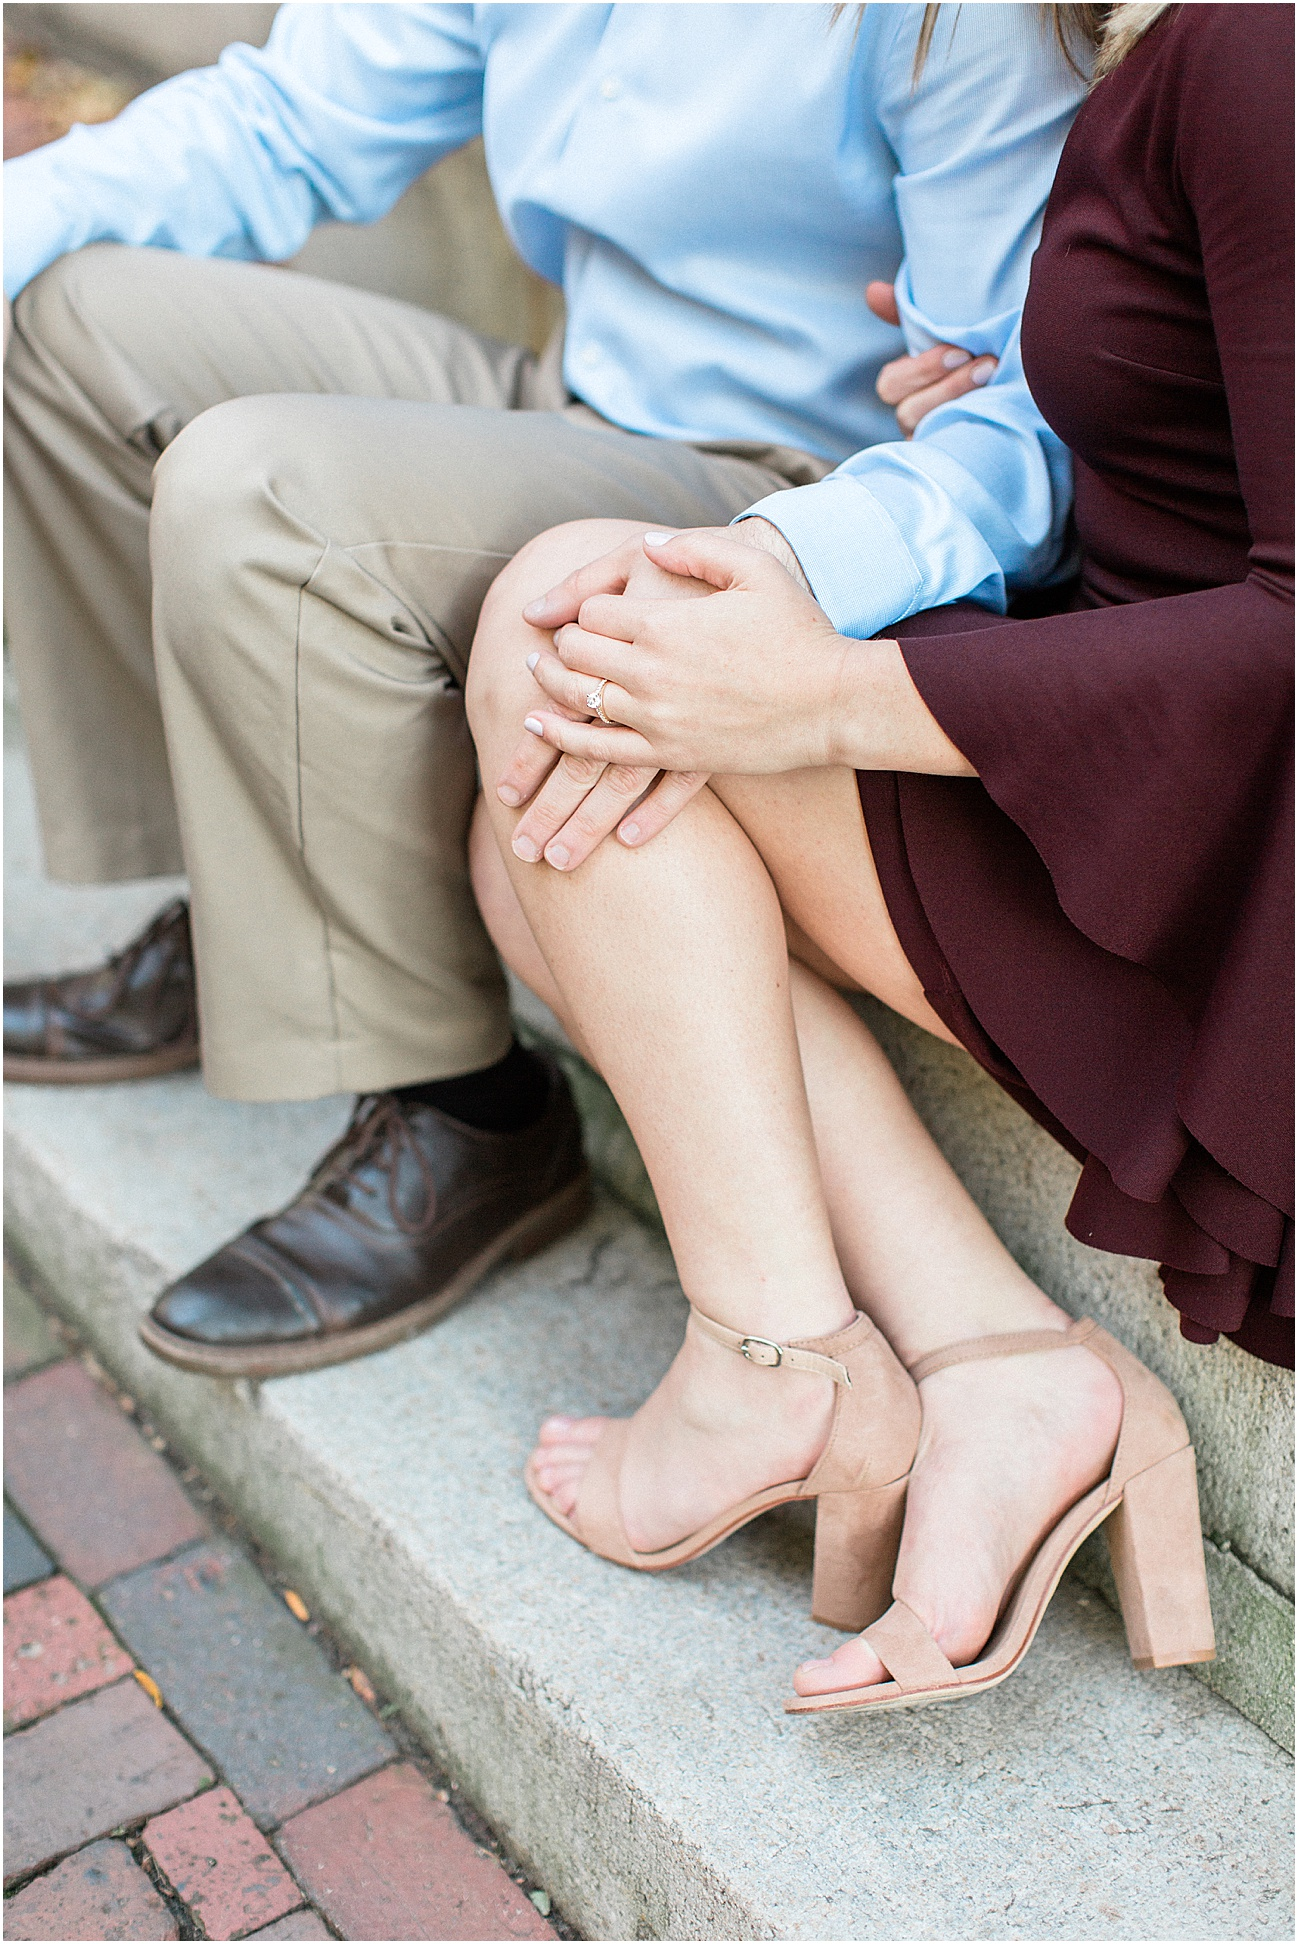 jenny_jared_beacon_hill_acorn_street_seaport_engagement_fall_cape_cod_boston_wedding_photographer_meredith_jane_photography_photo_1524.jpg